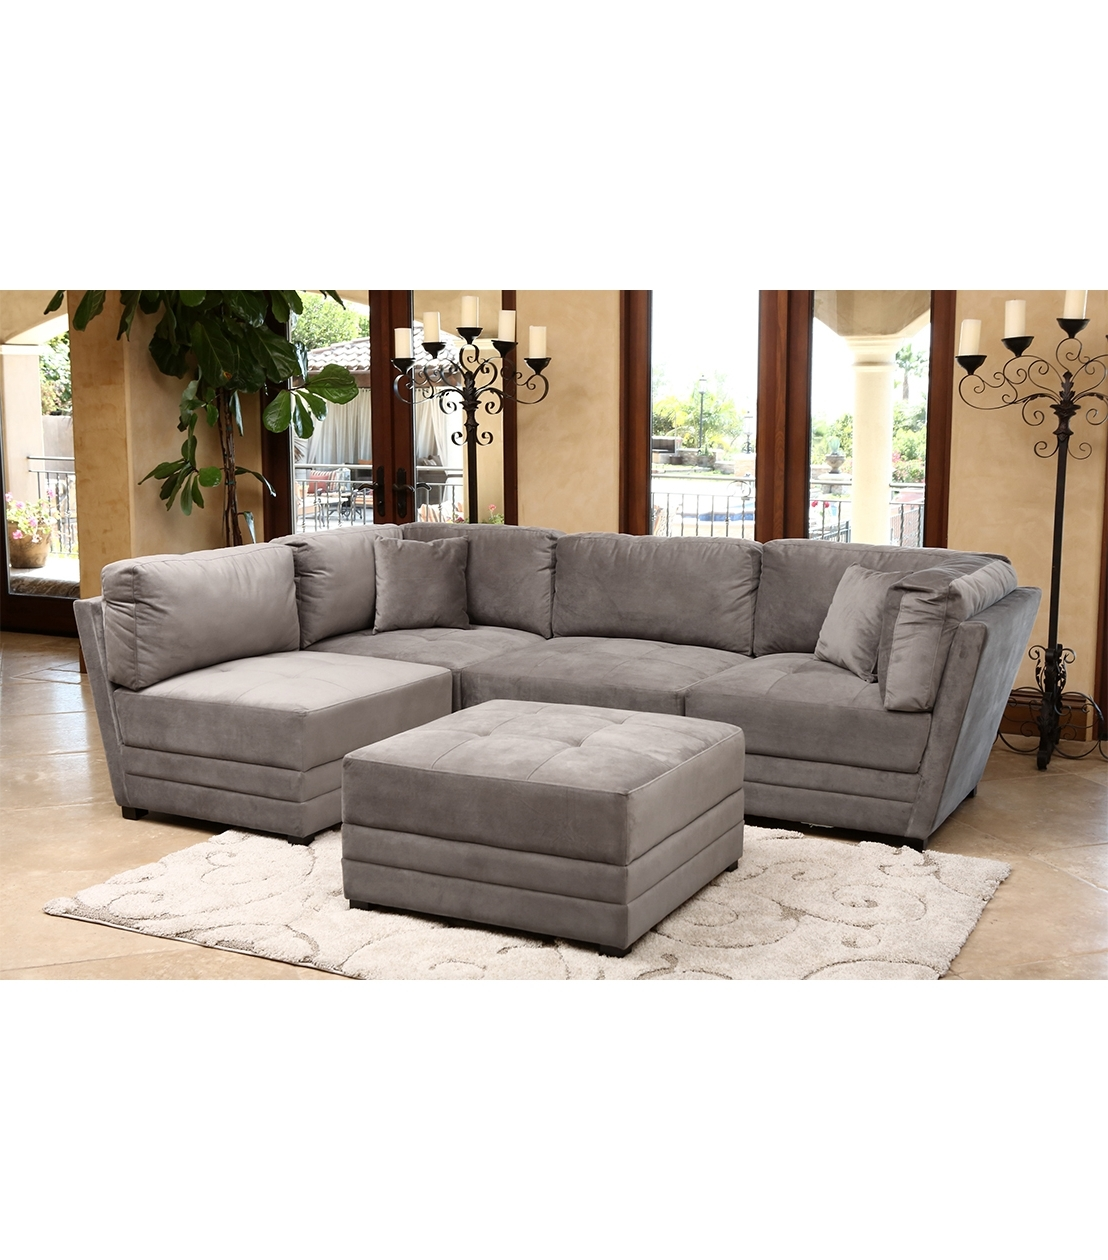 Sectionals : Leyla Sectional, Taupe In Most Recently Released Abbyson Sectional Sofas (View 17 of 20)